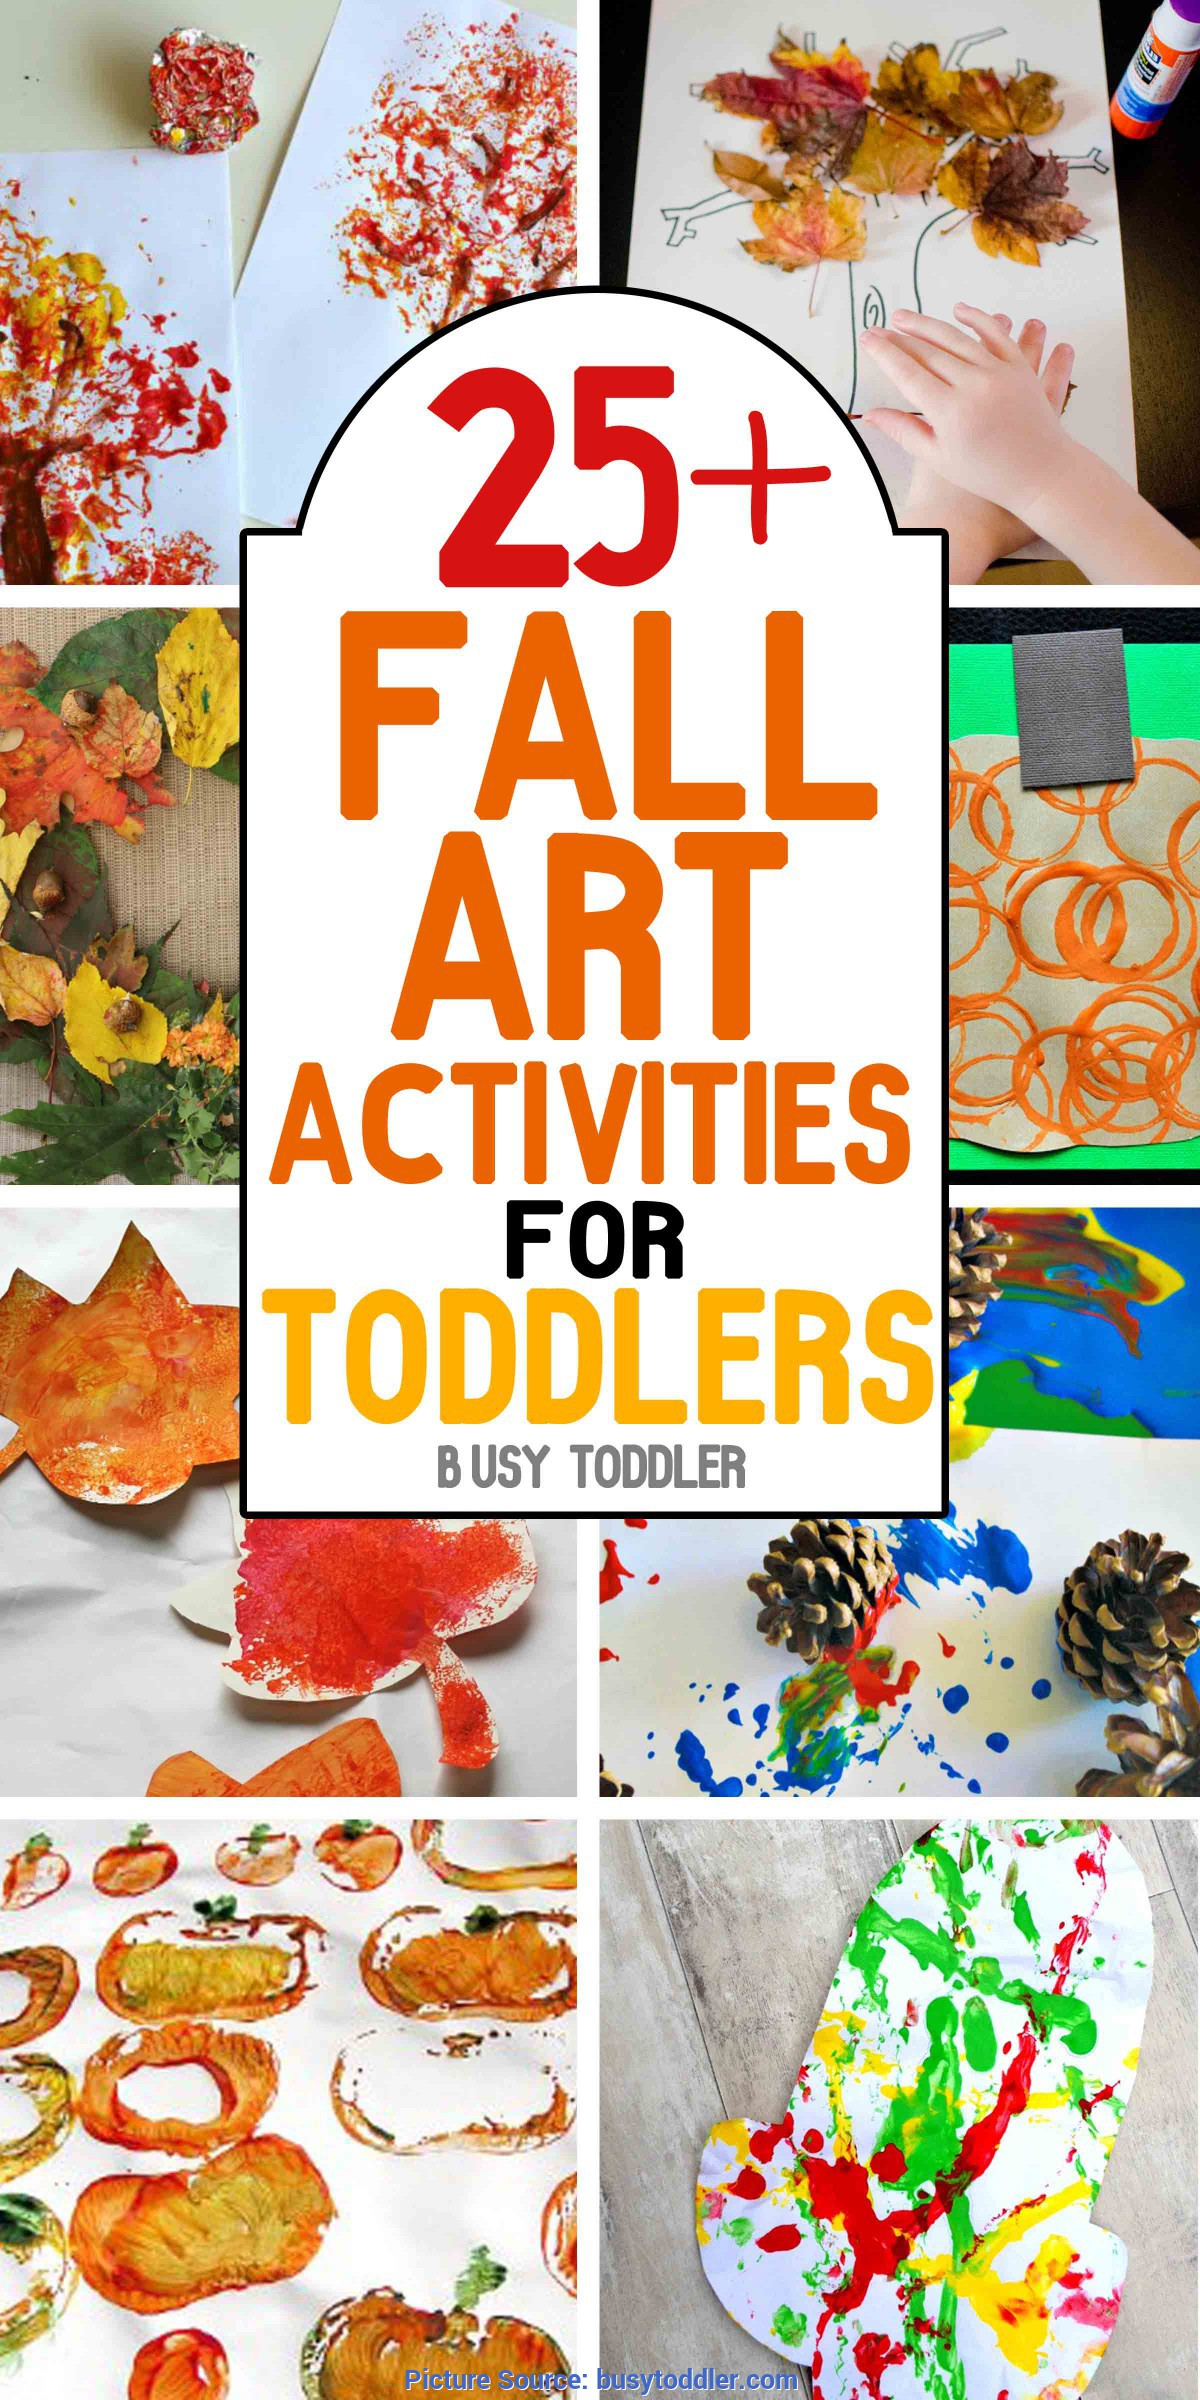 Unusual Autumn Art For Toddlers 50+ Awesome Fall Activities For Toddlers - Busy Tod